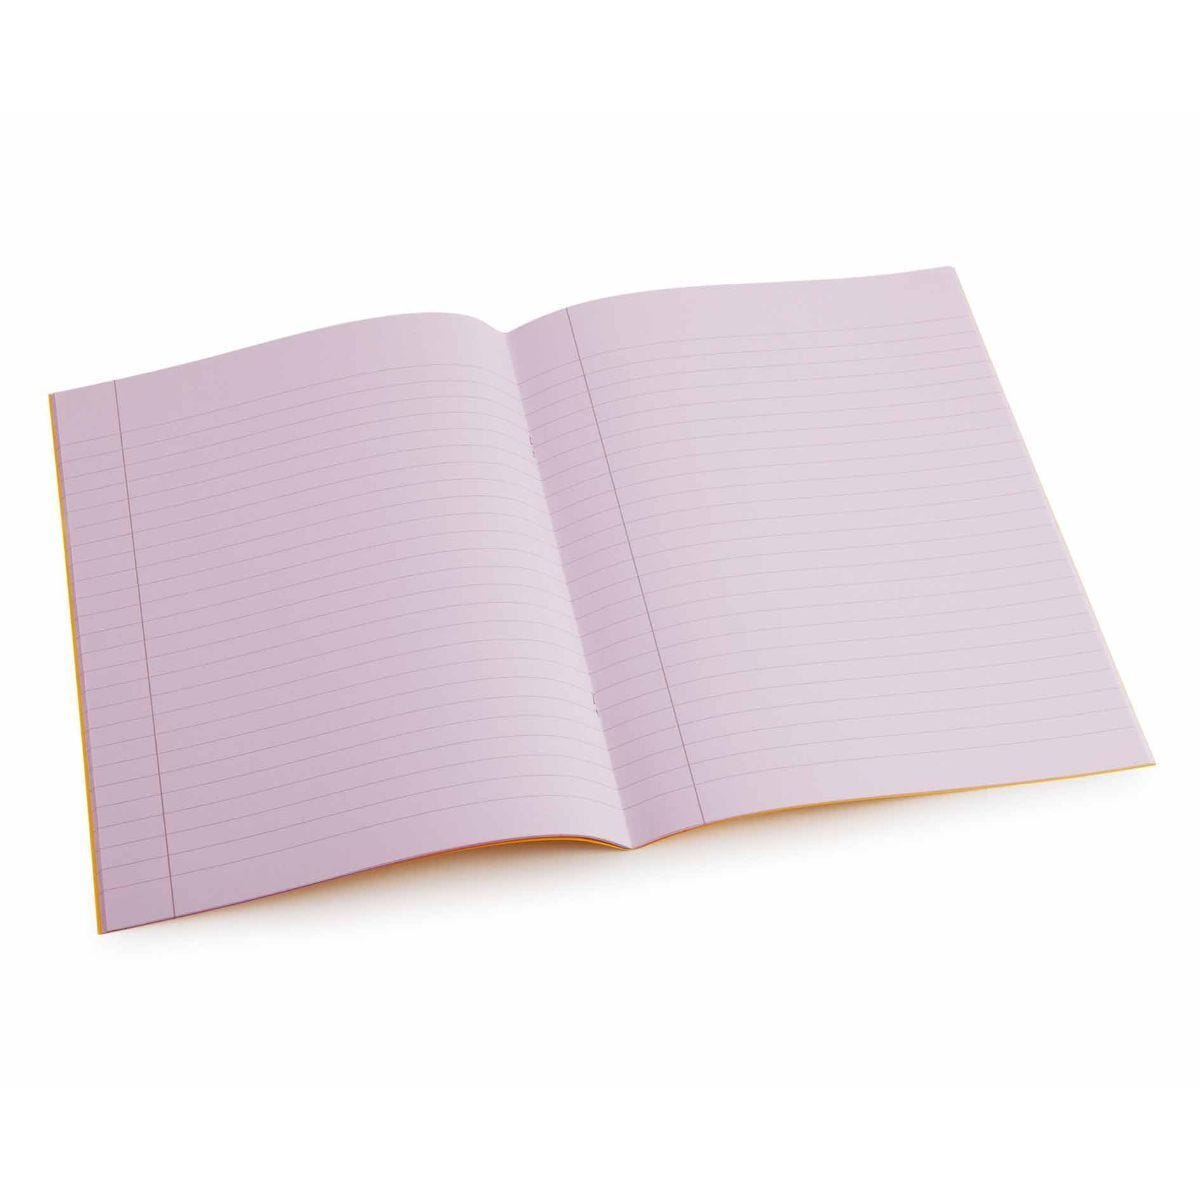 Tinted Exercise Books Lined A4 10mm Purple